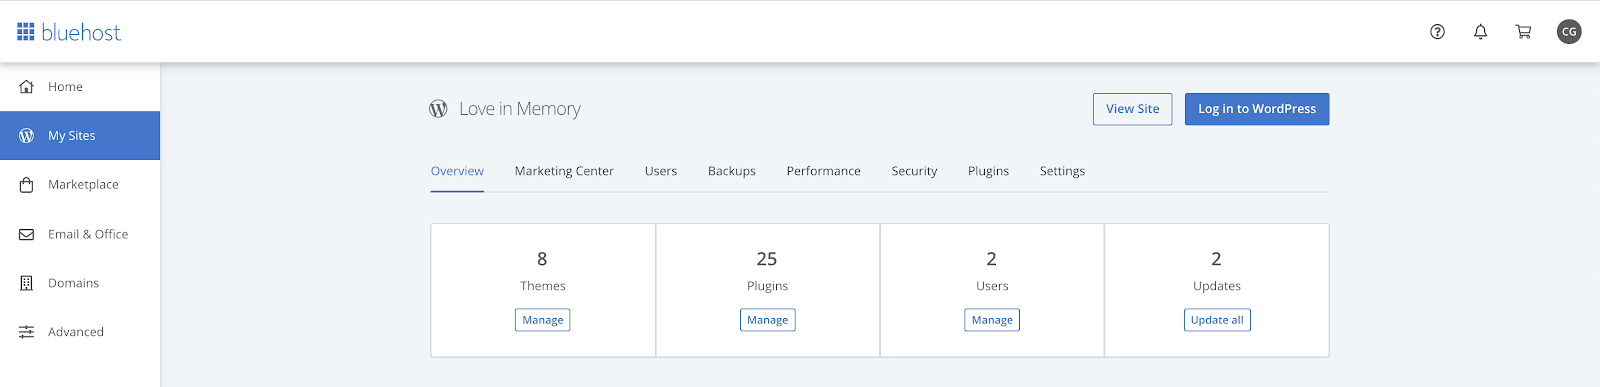 Bluehost website manager